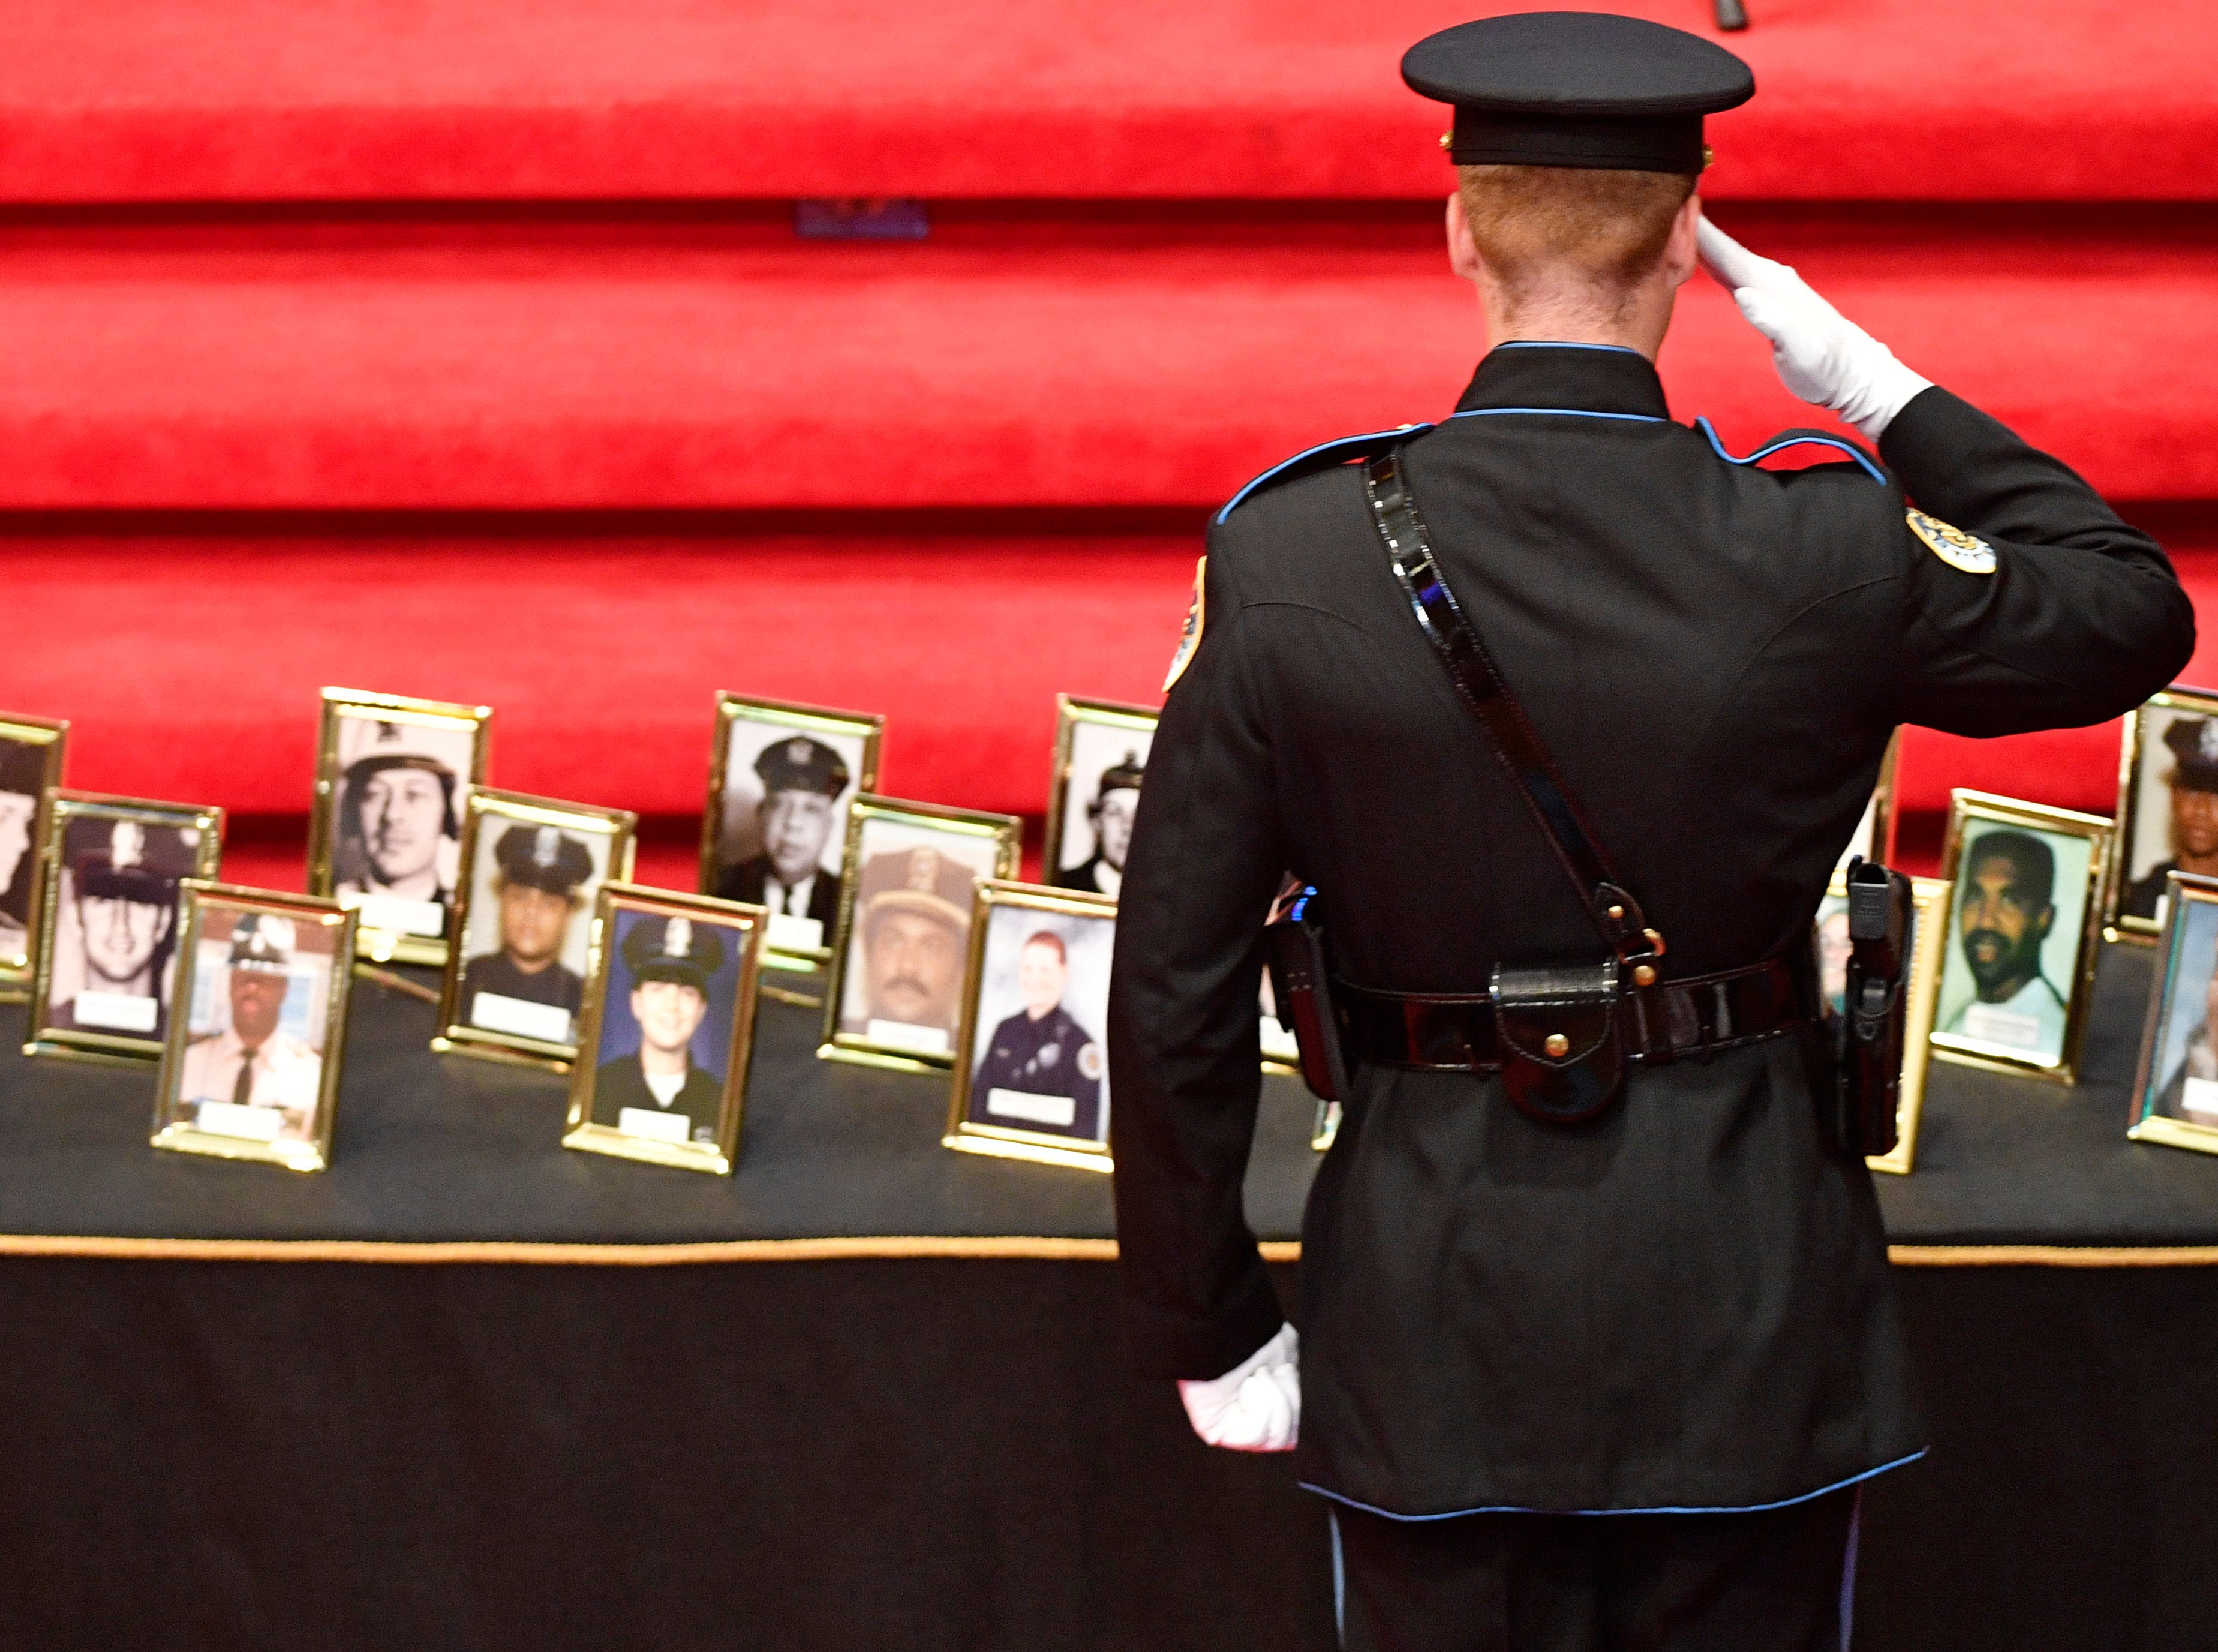 A member of the Police Drill and Ceremony Team salutes the photos of fallen officers at the annual memorial service honoring Nashville's police officers who have died in service to the city Thursday, May 9, 2019, in Nashville, Tenn.